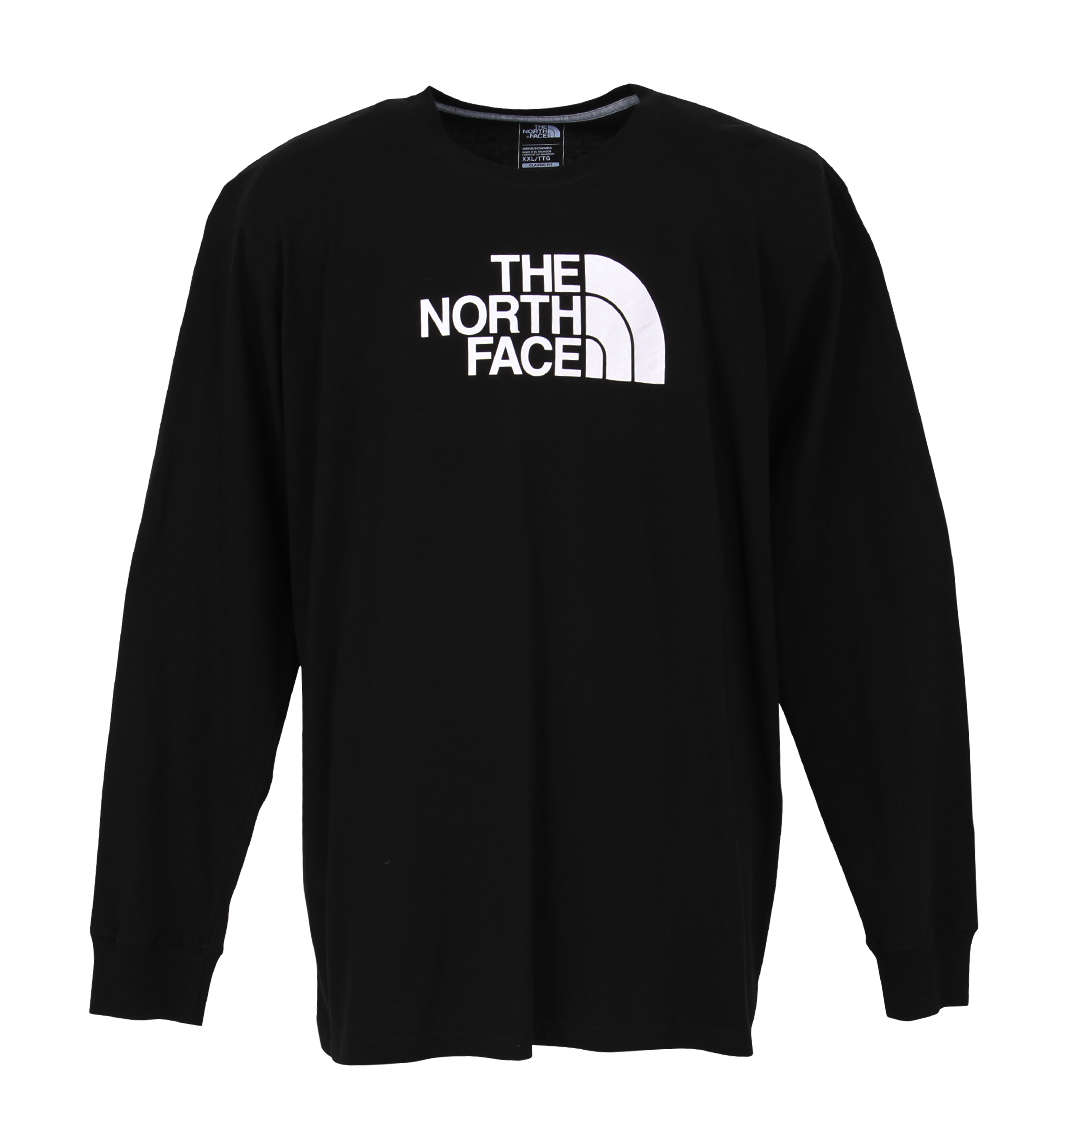 THE NORTH FACE長袖Tシャツ